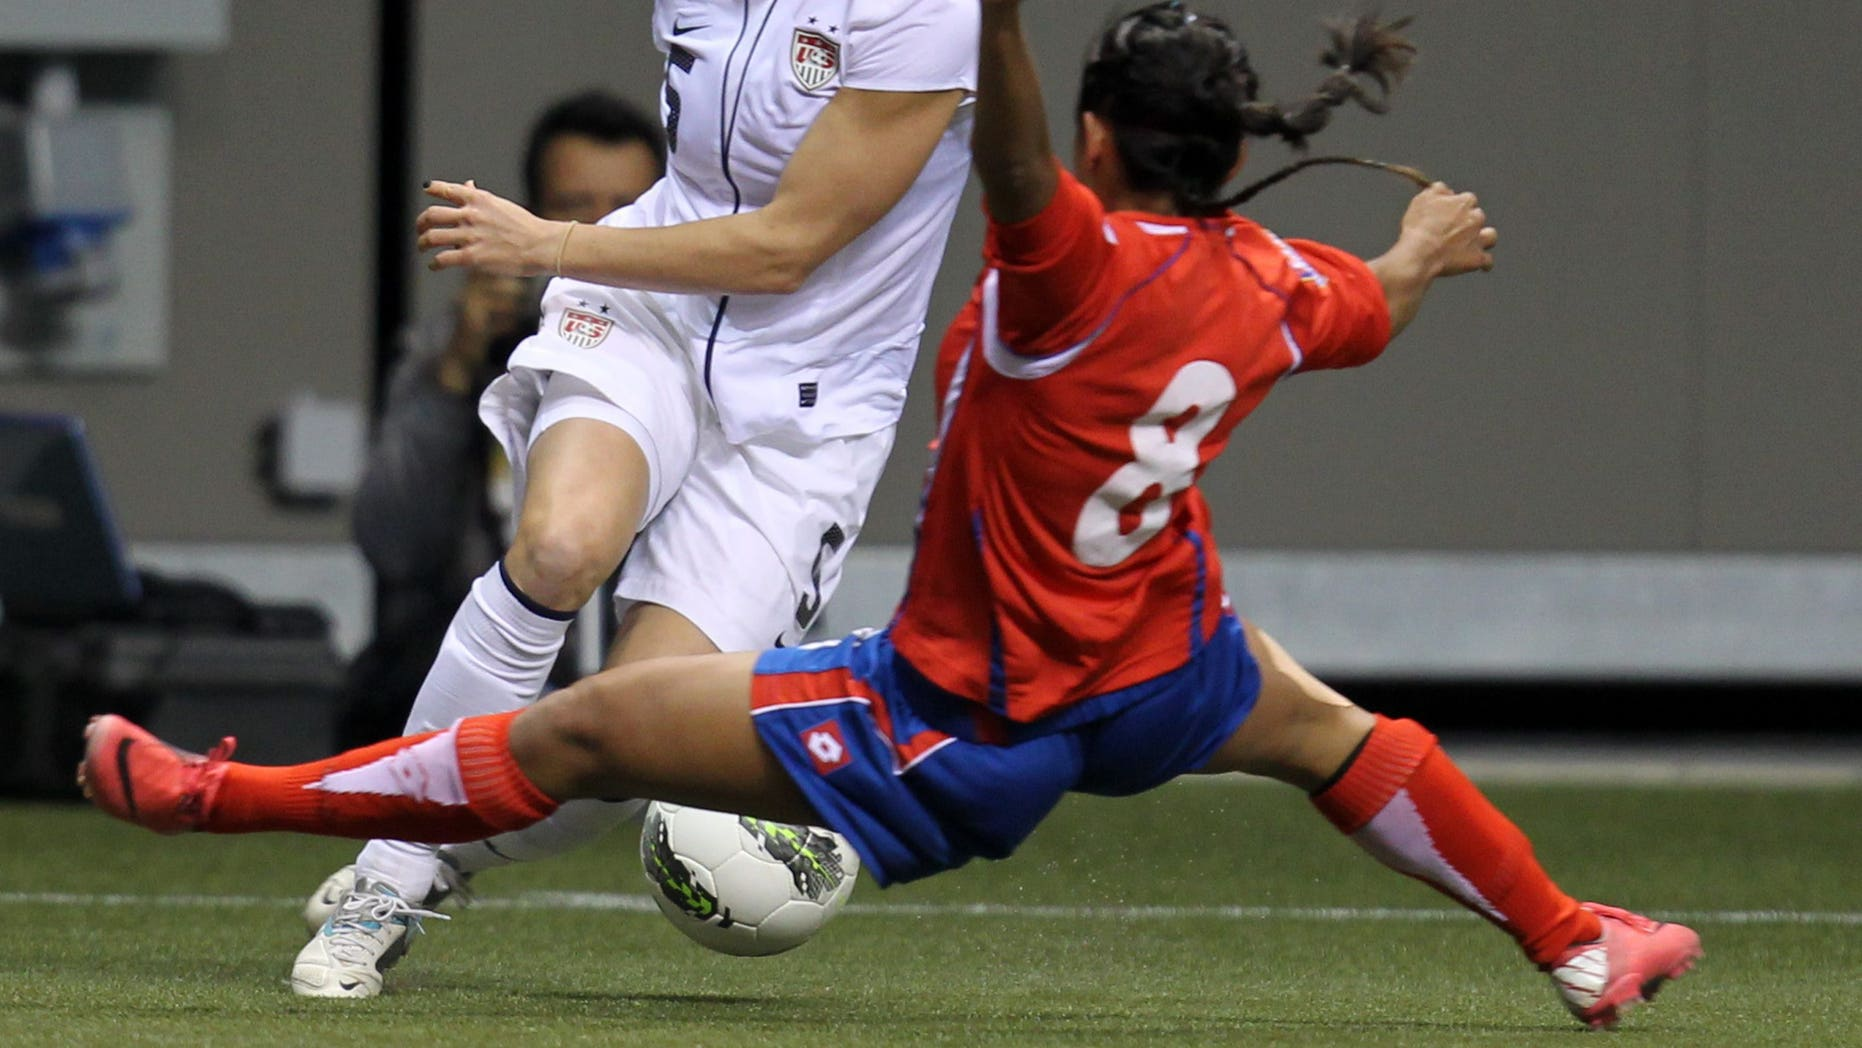 Jan 27, 2012: In this file photo, United States' Kelly O'Hara (5) fights for control of the ball with Costa Rica's Daniela Cruz (8) during the first half of CONCACAF women's Olympic qualifying soccer game action at B.C. Place in Vancouver, British Columbia.